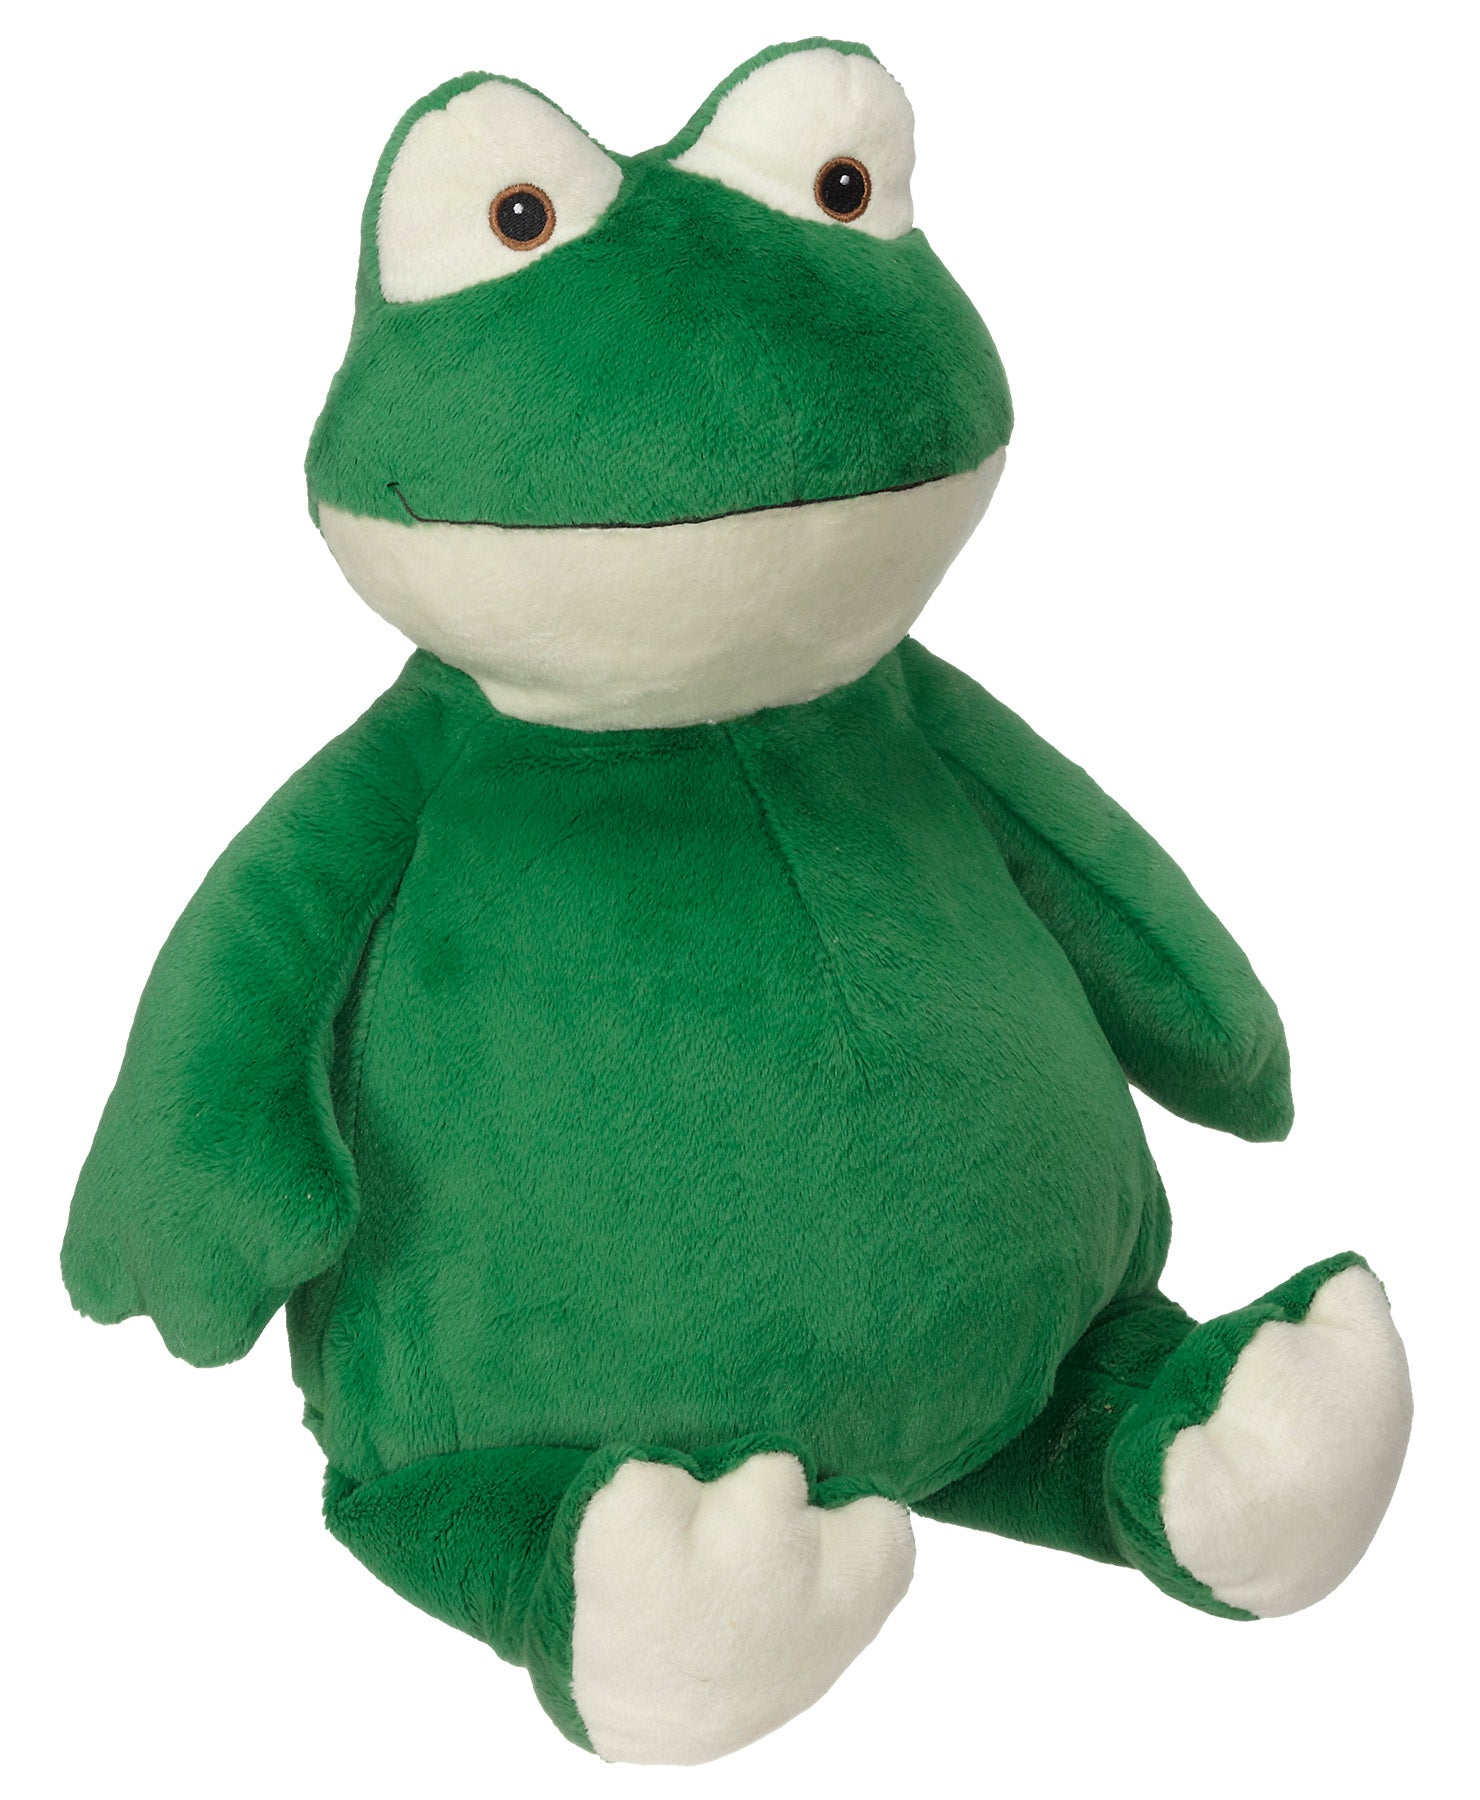 Embroidery Buddy - Frog - Personalise Me